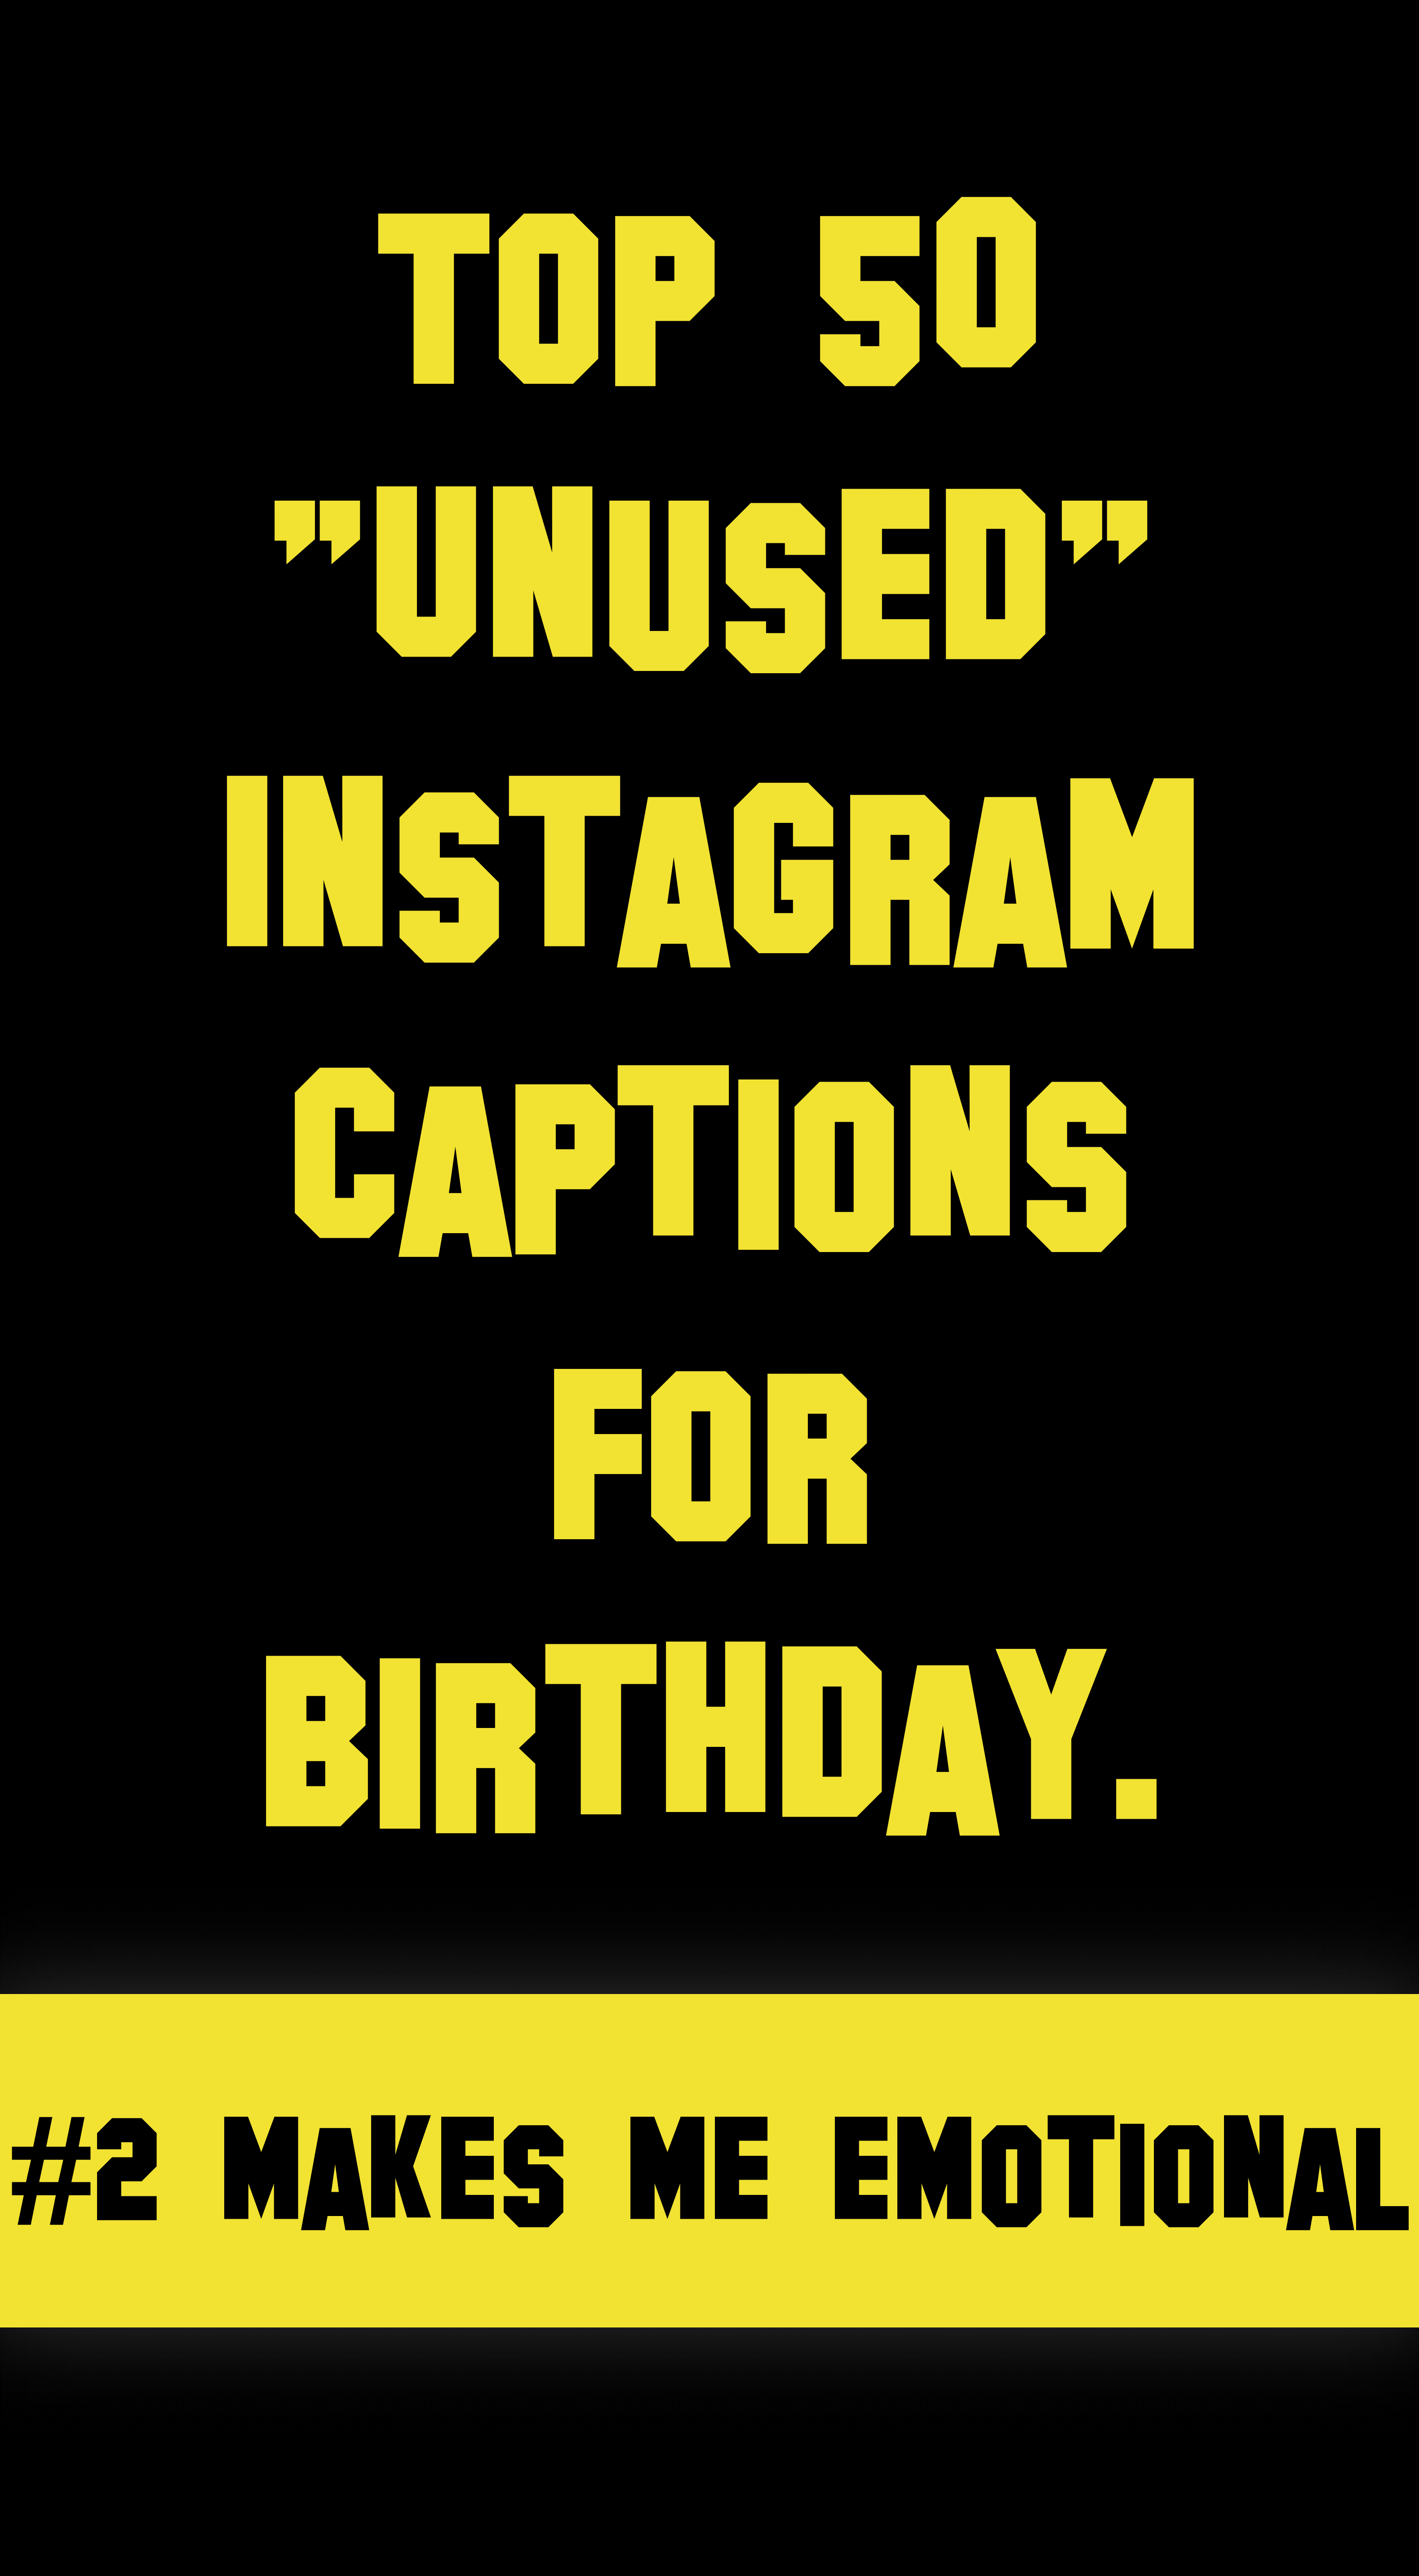 Top 50 Unused Instagram Captions For Birthday March 2020